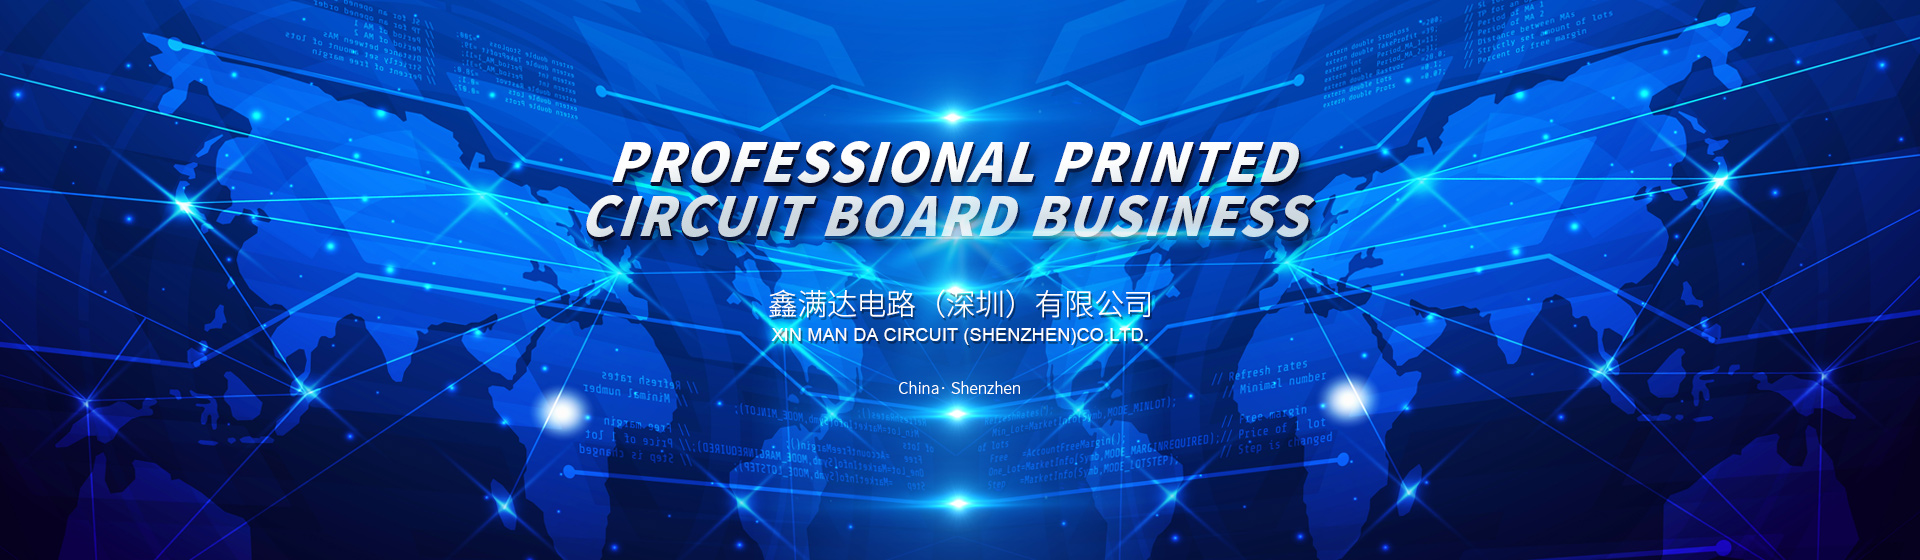 Xin Man Da Circuit Shenzhen Co Ltd Factory Inverter Printed Good Quality Blank Pcb Boards From Buy Board New Weather 2017 09 22